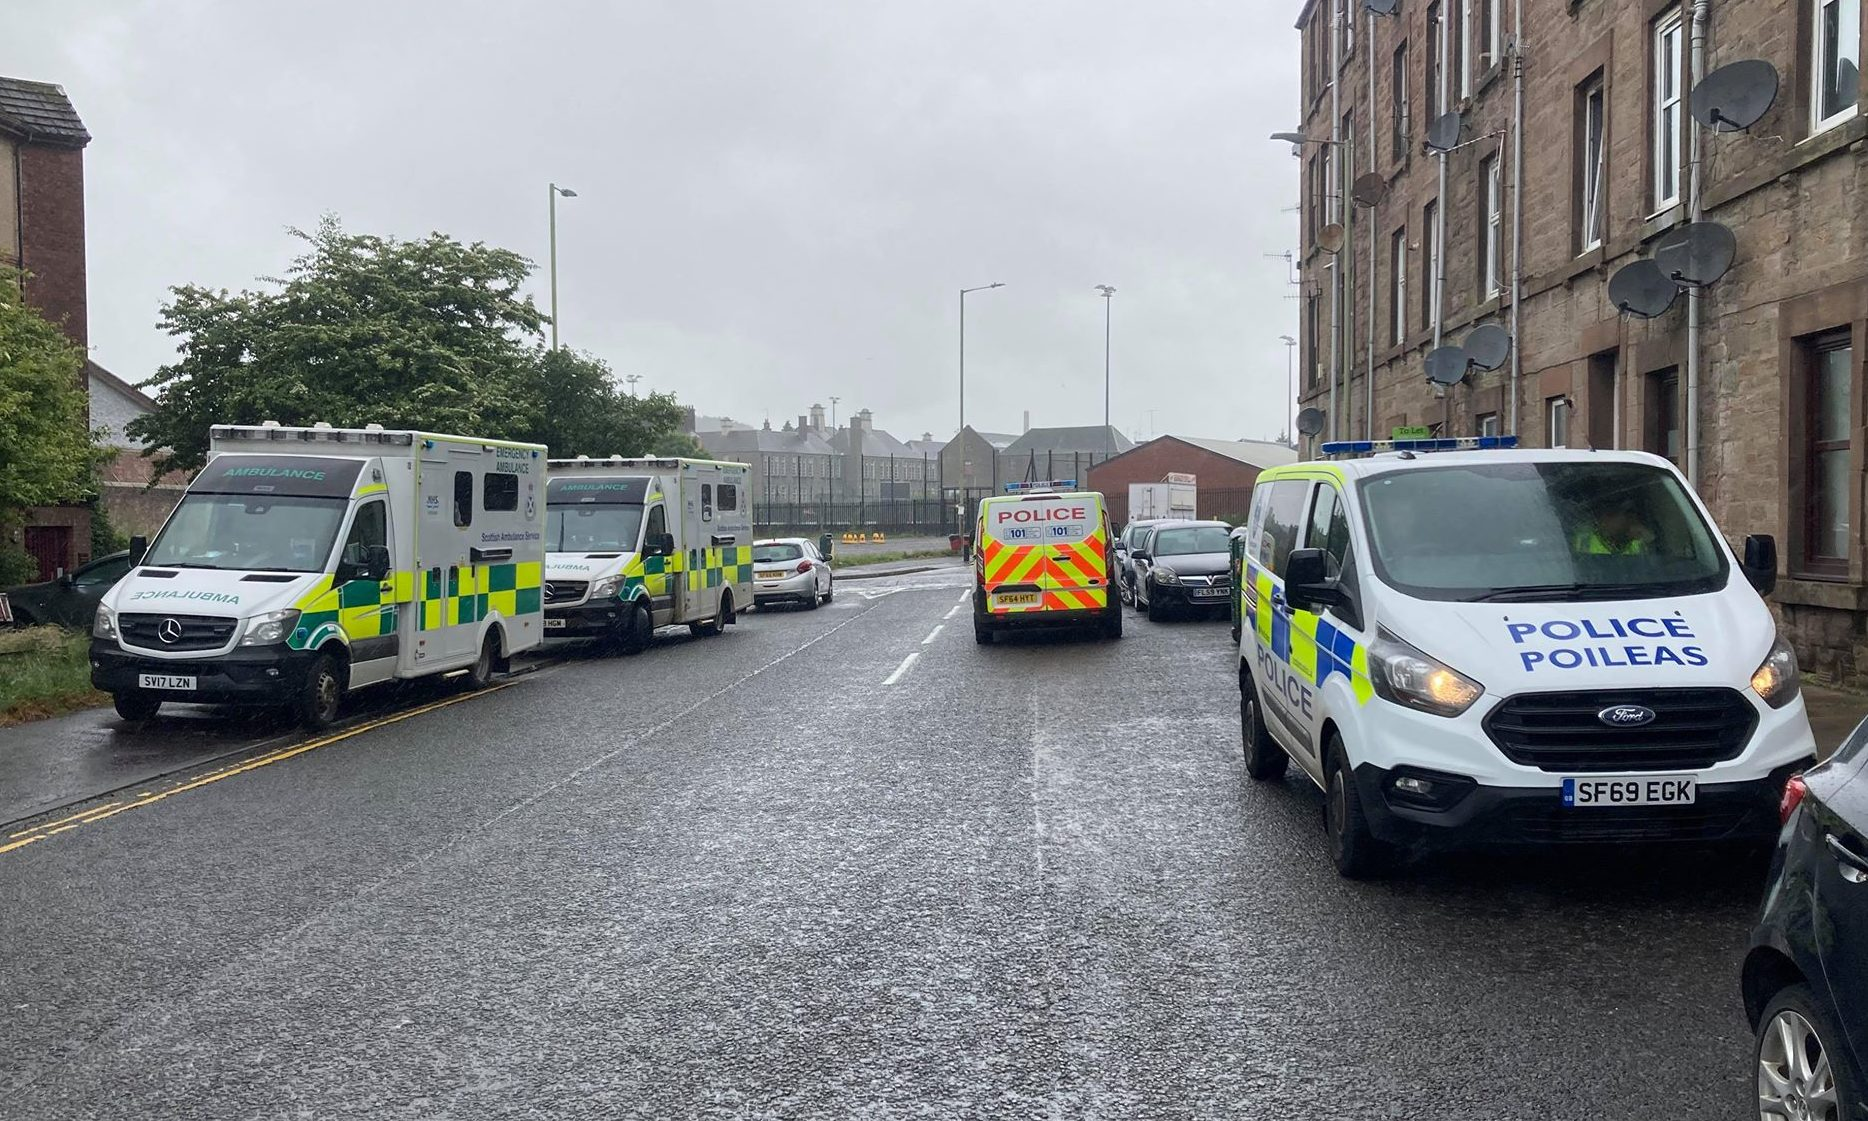 Two ambulances and two police vans were seen at the scene, with other police vehicles witnessed coming and going.